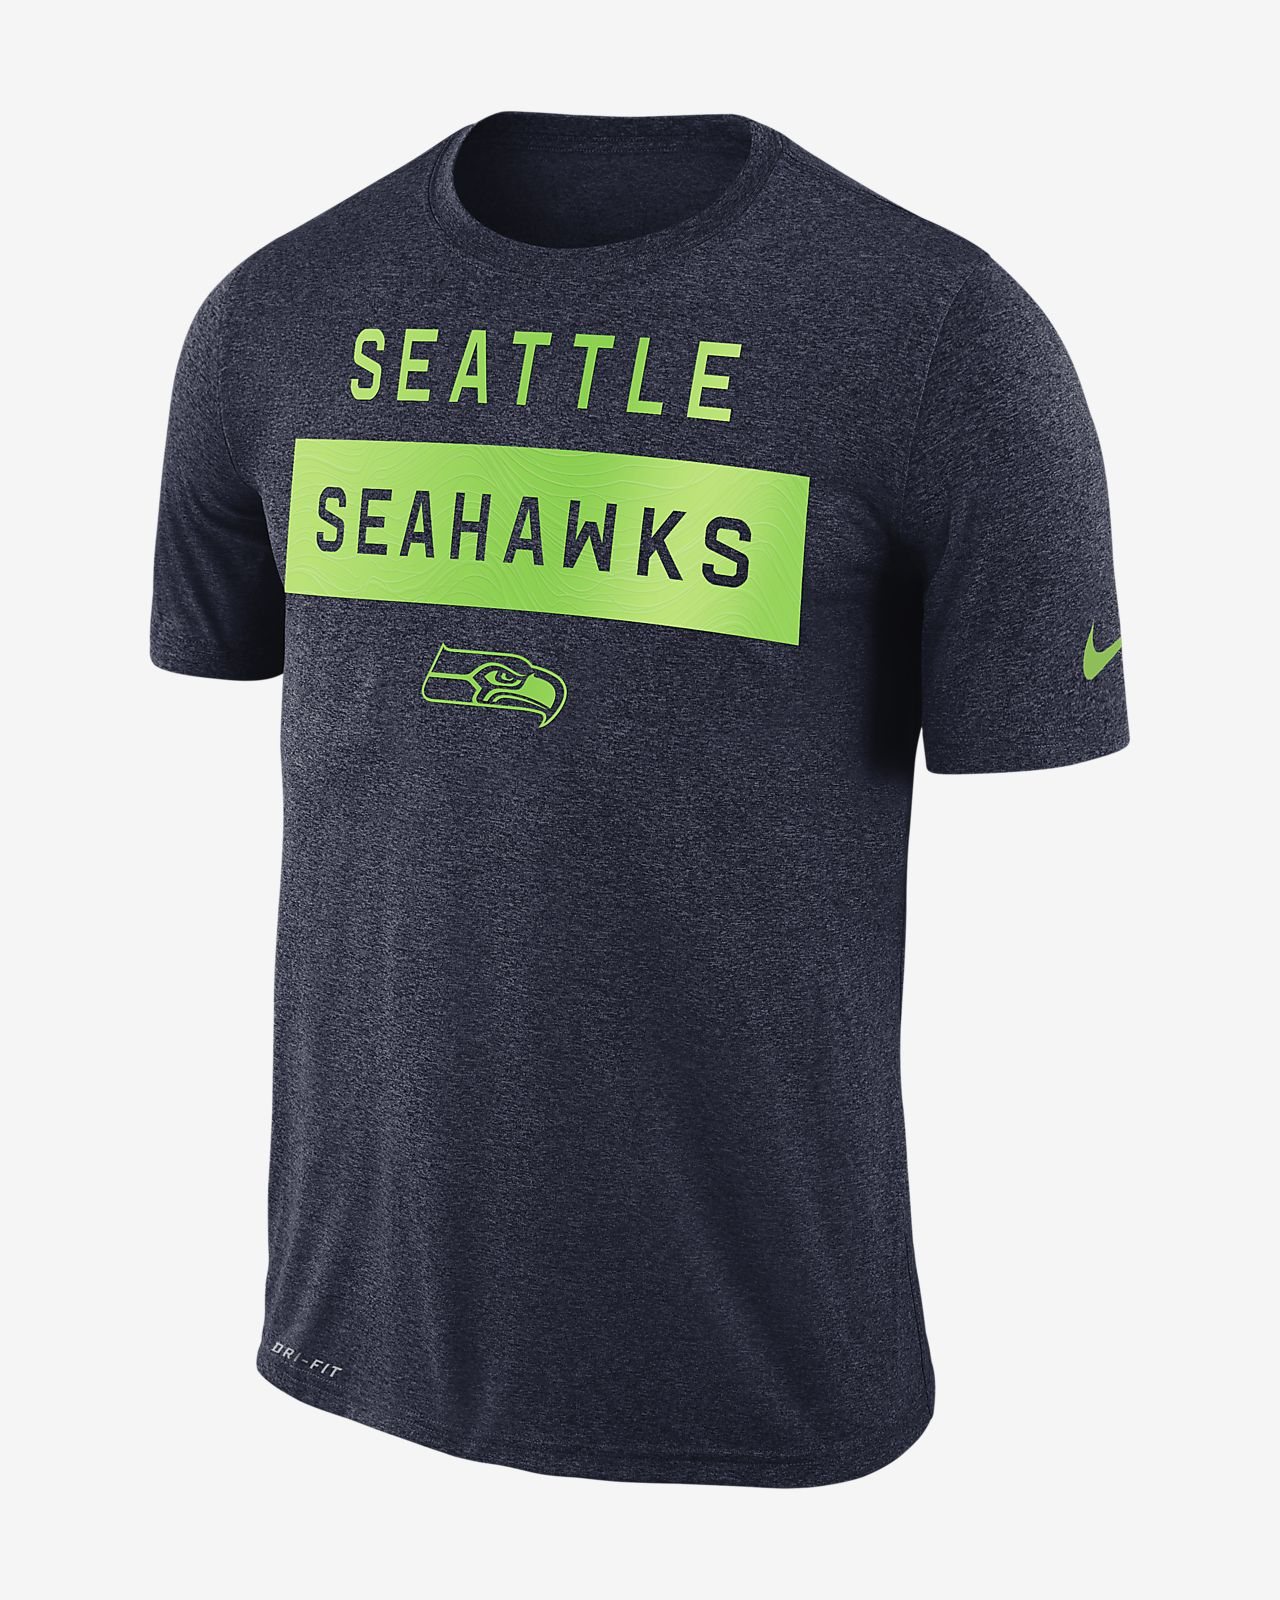 9fbad25f9453 Nike Legend Lift (NFL Seahawks) Men s T-Shirt. Nike.com